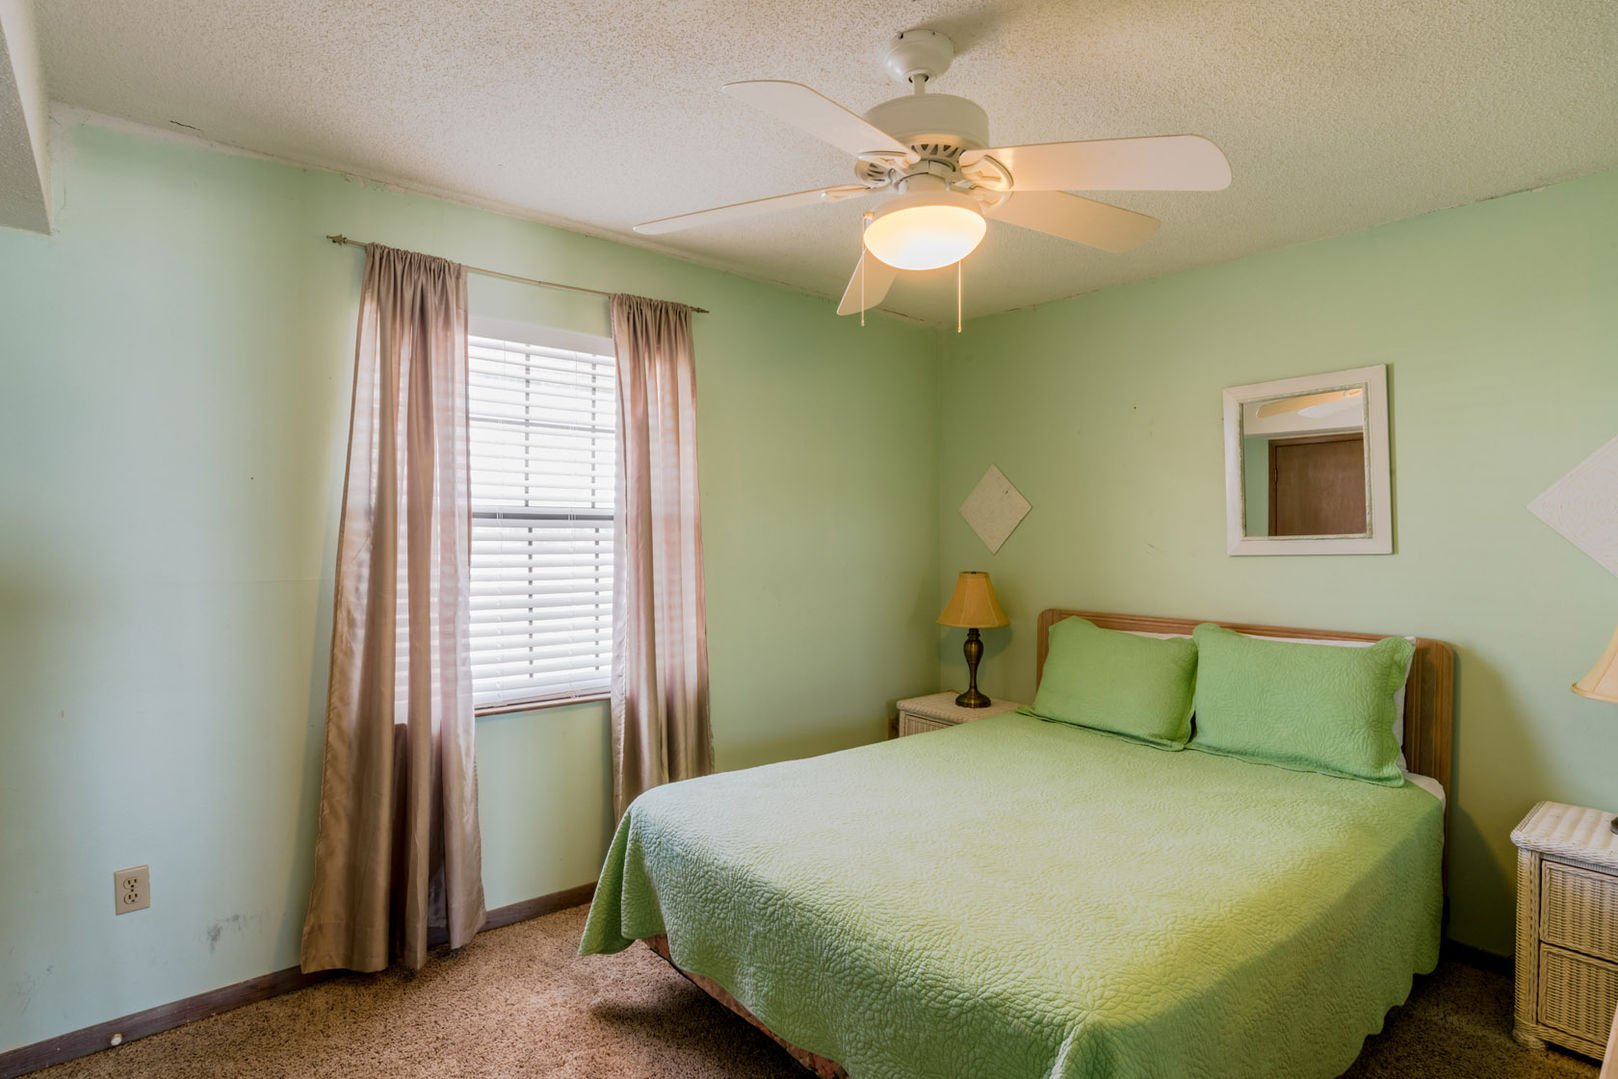 This Guest Bedroom On The First Floor Has A Queen bed, nightstands, and great lighting.